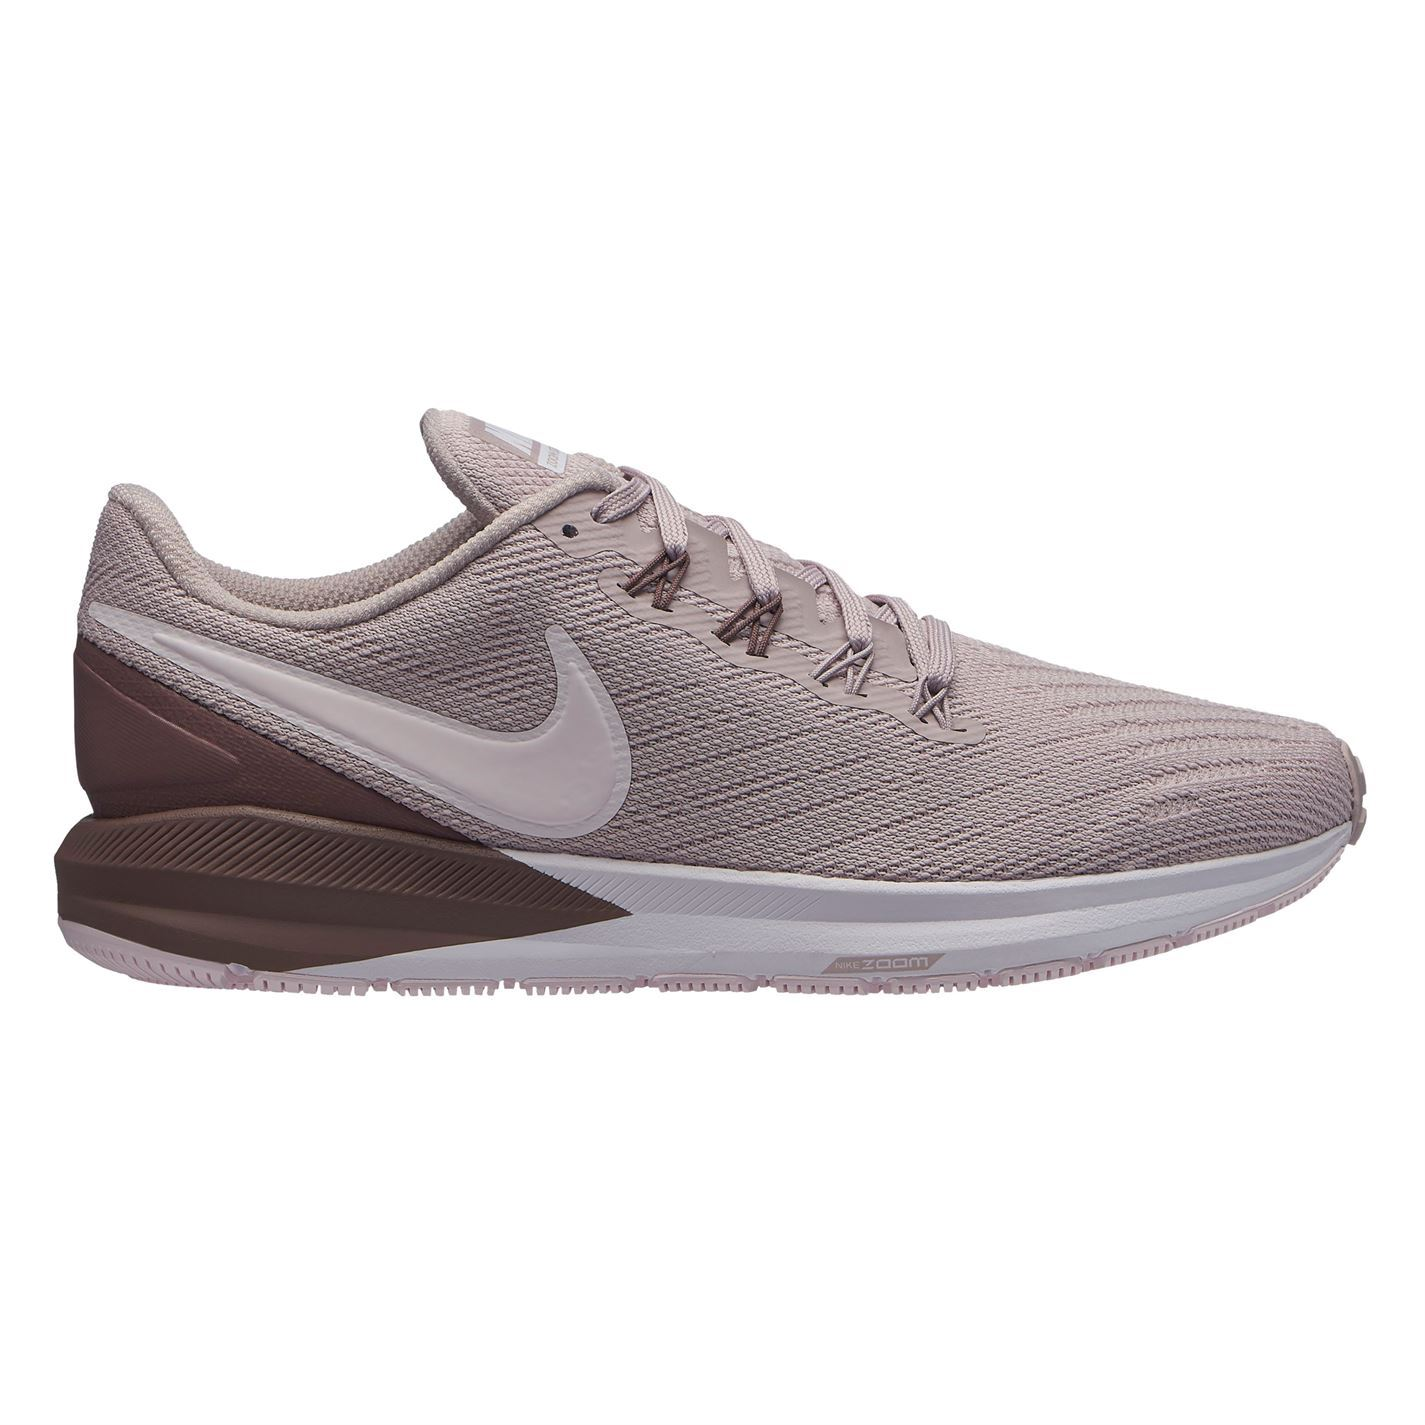 pretty nice e0570 d7baf Details about Nike Zoom Structure 2 Running Shoes Womens Jogging Trainers  Sneakers Fitness